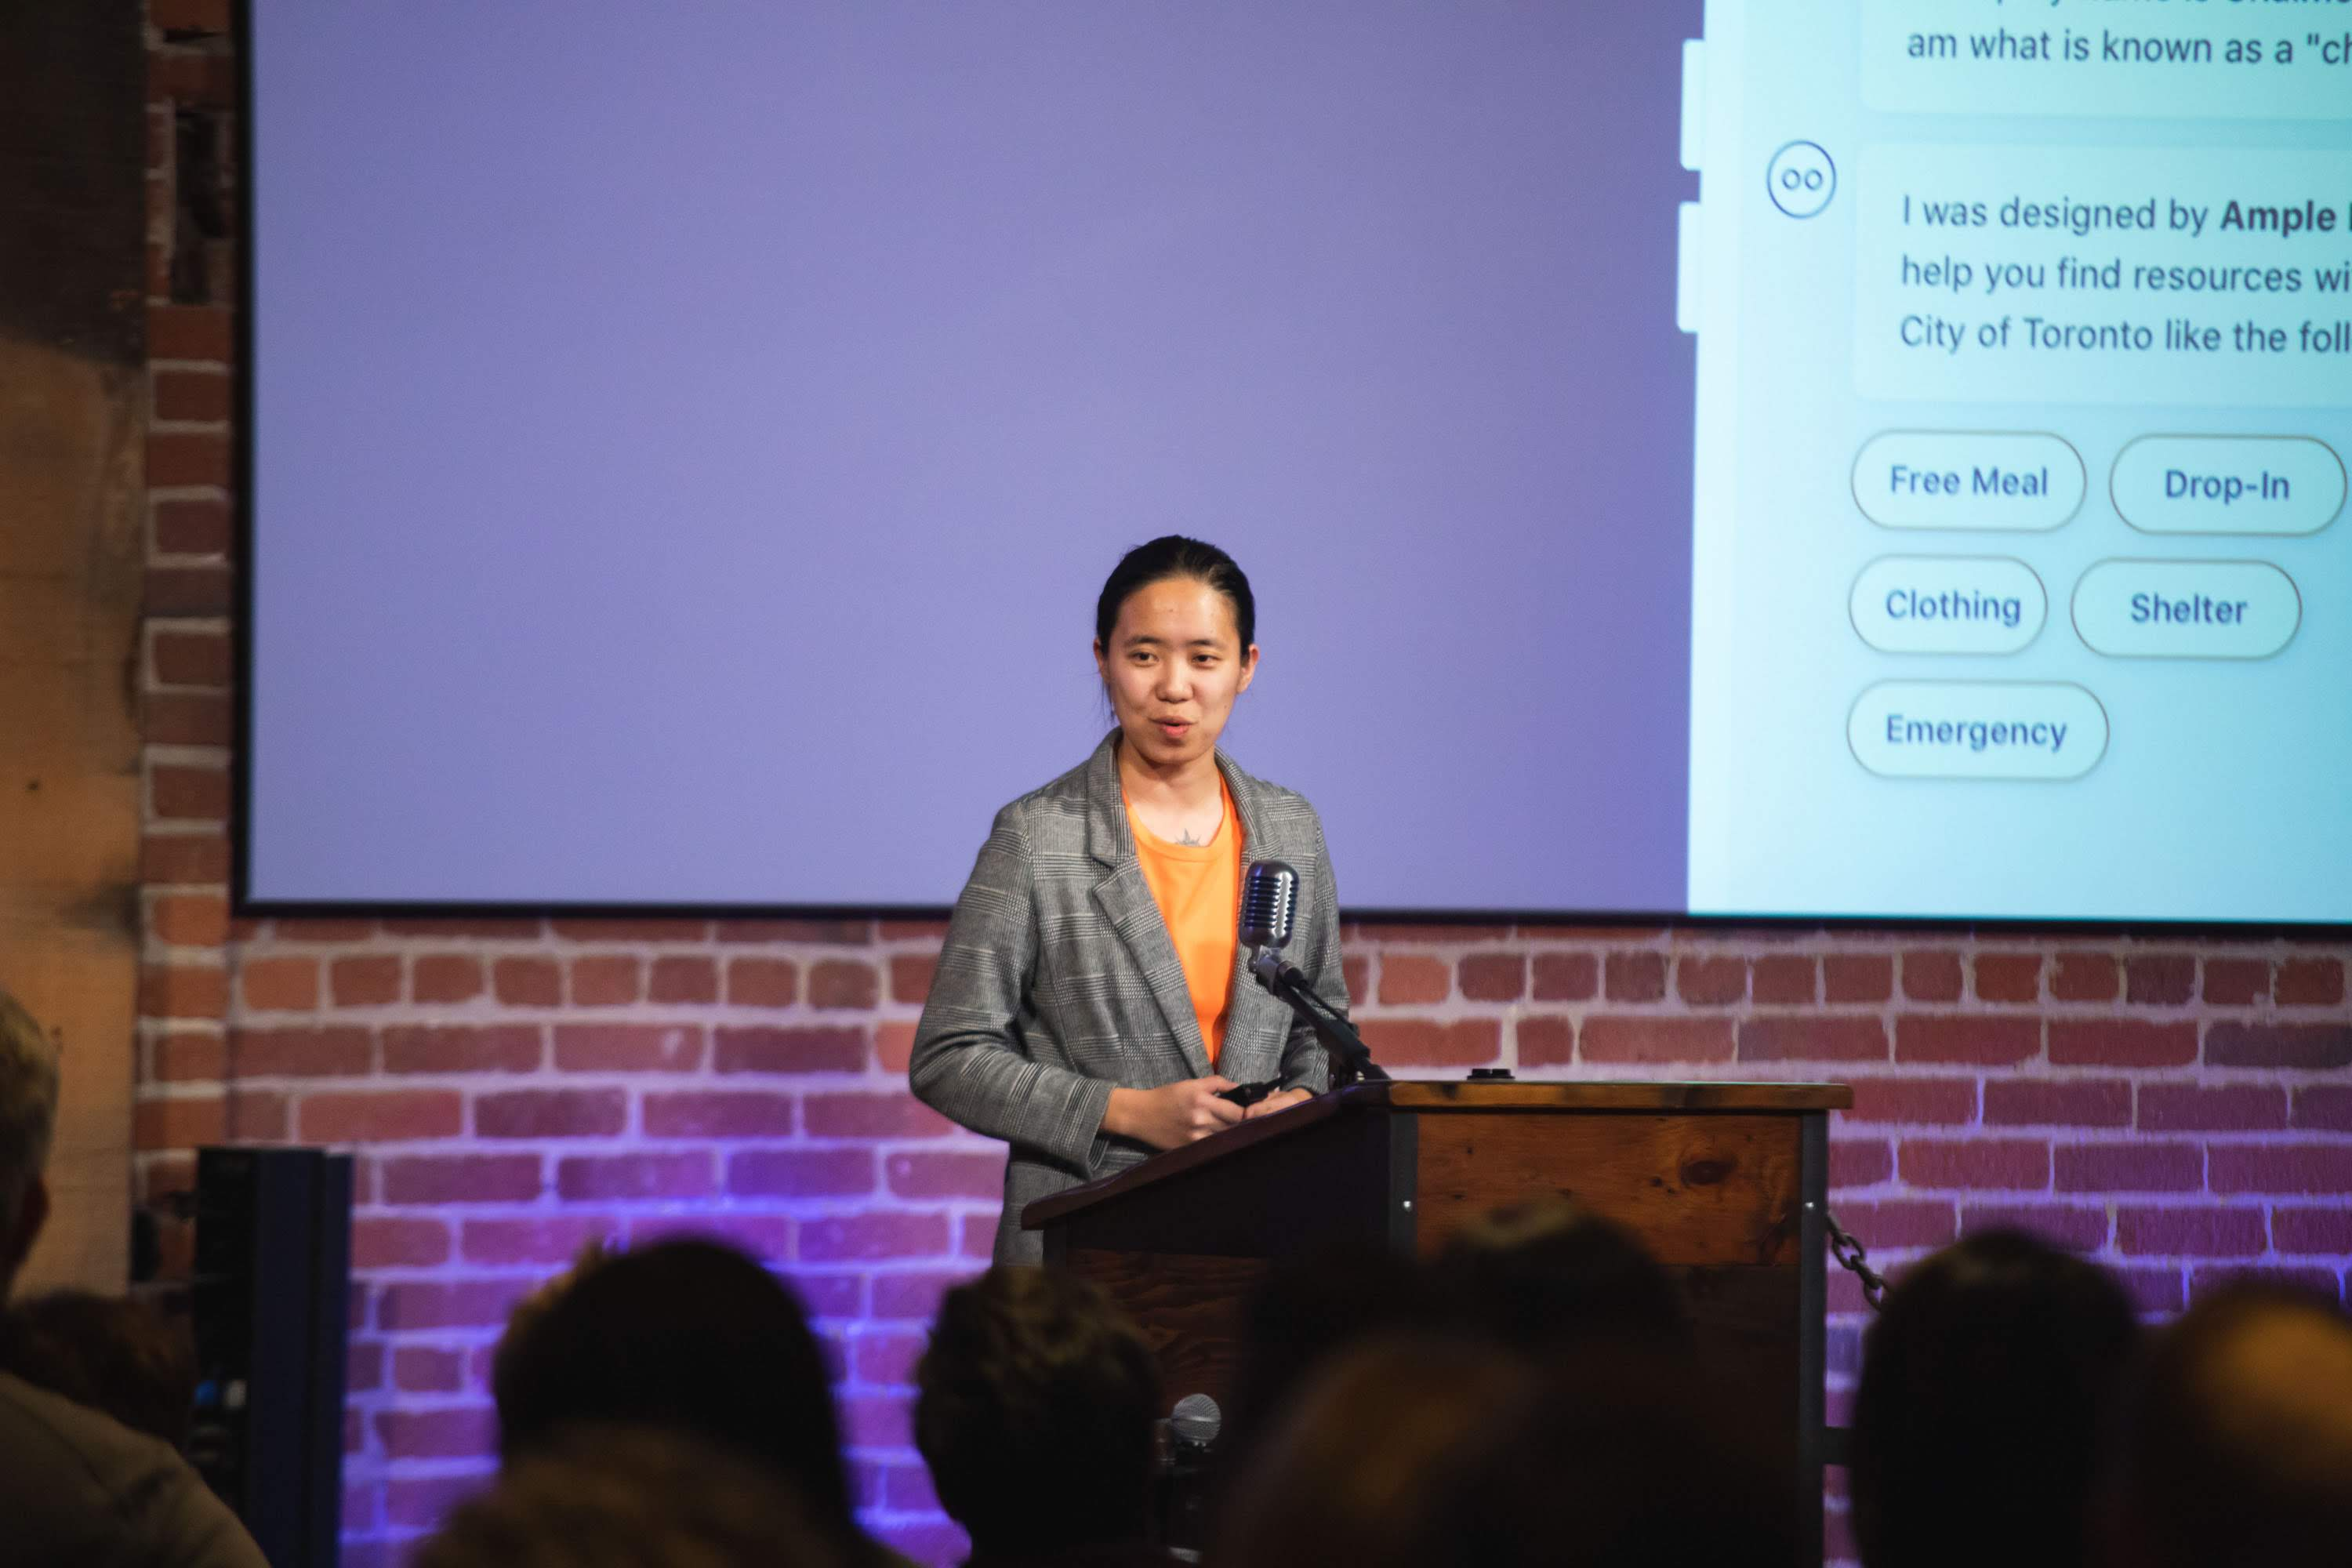 CG Chen, Founder of Ample Labs, pitching at Fast Forward Demo Day 2019 | Photo credit: David Dines